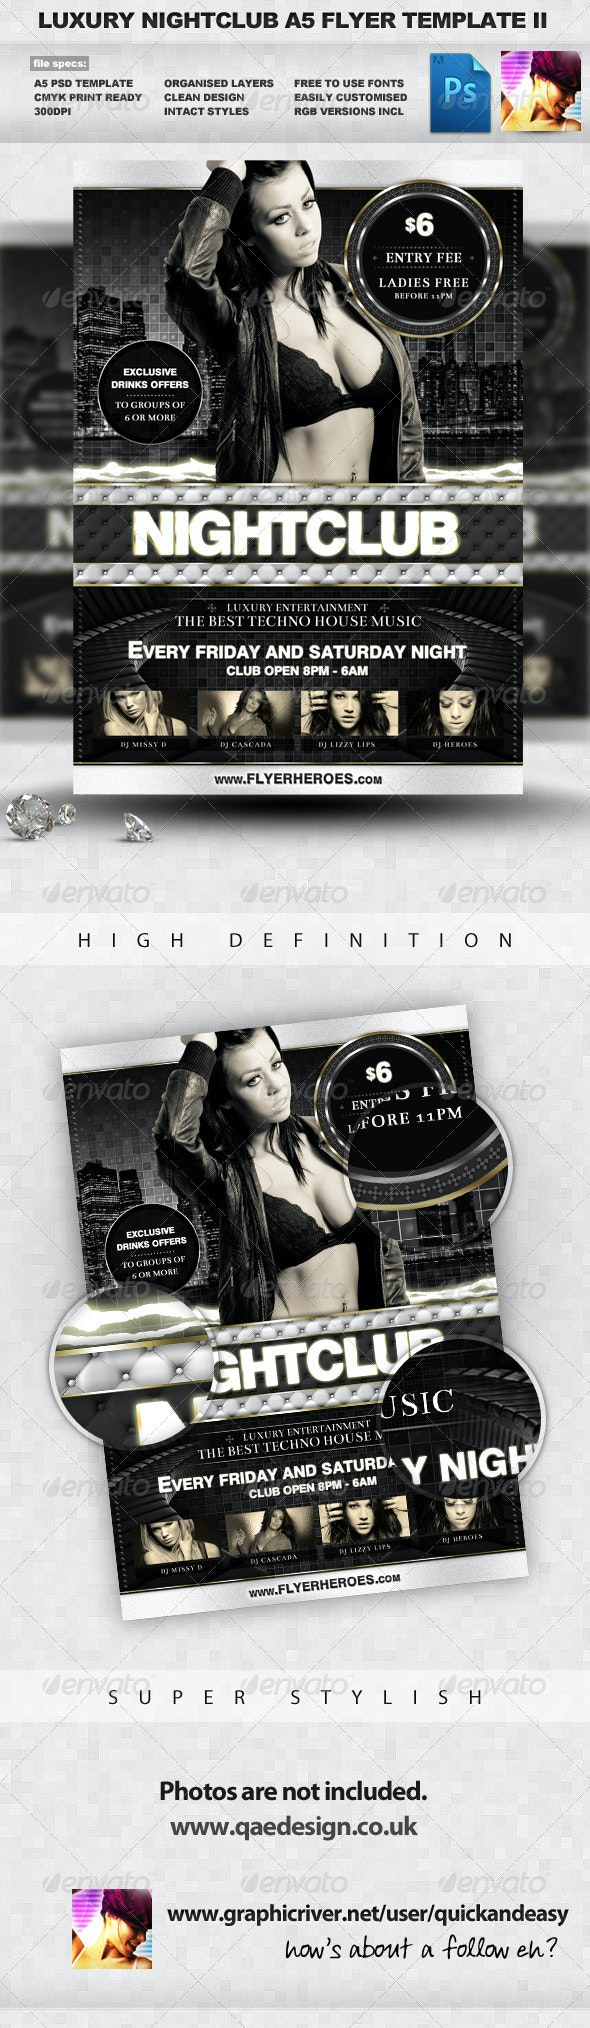 Luxury Nightclub Flyer Template II - Clubs & Parties Events